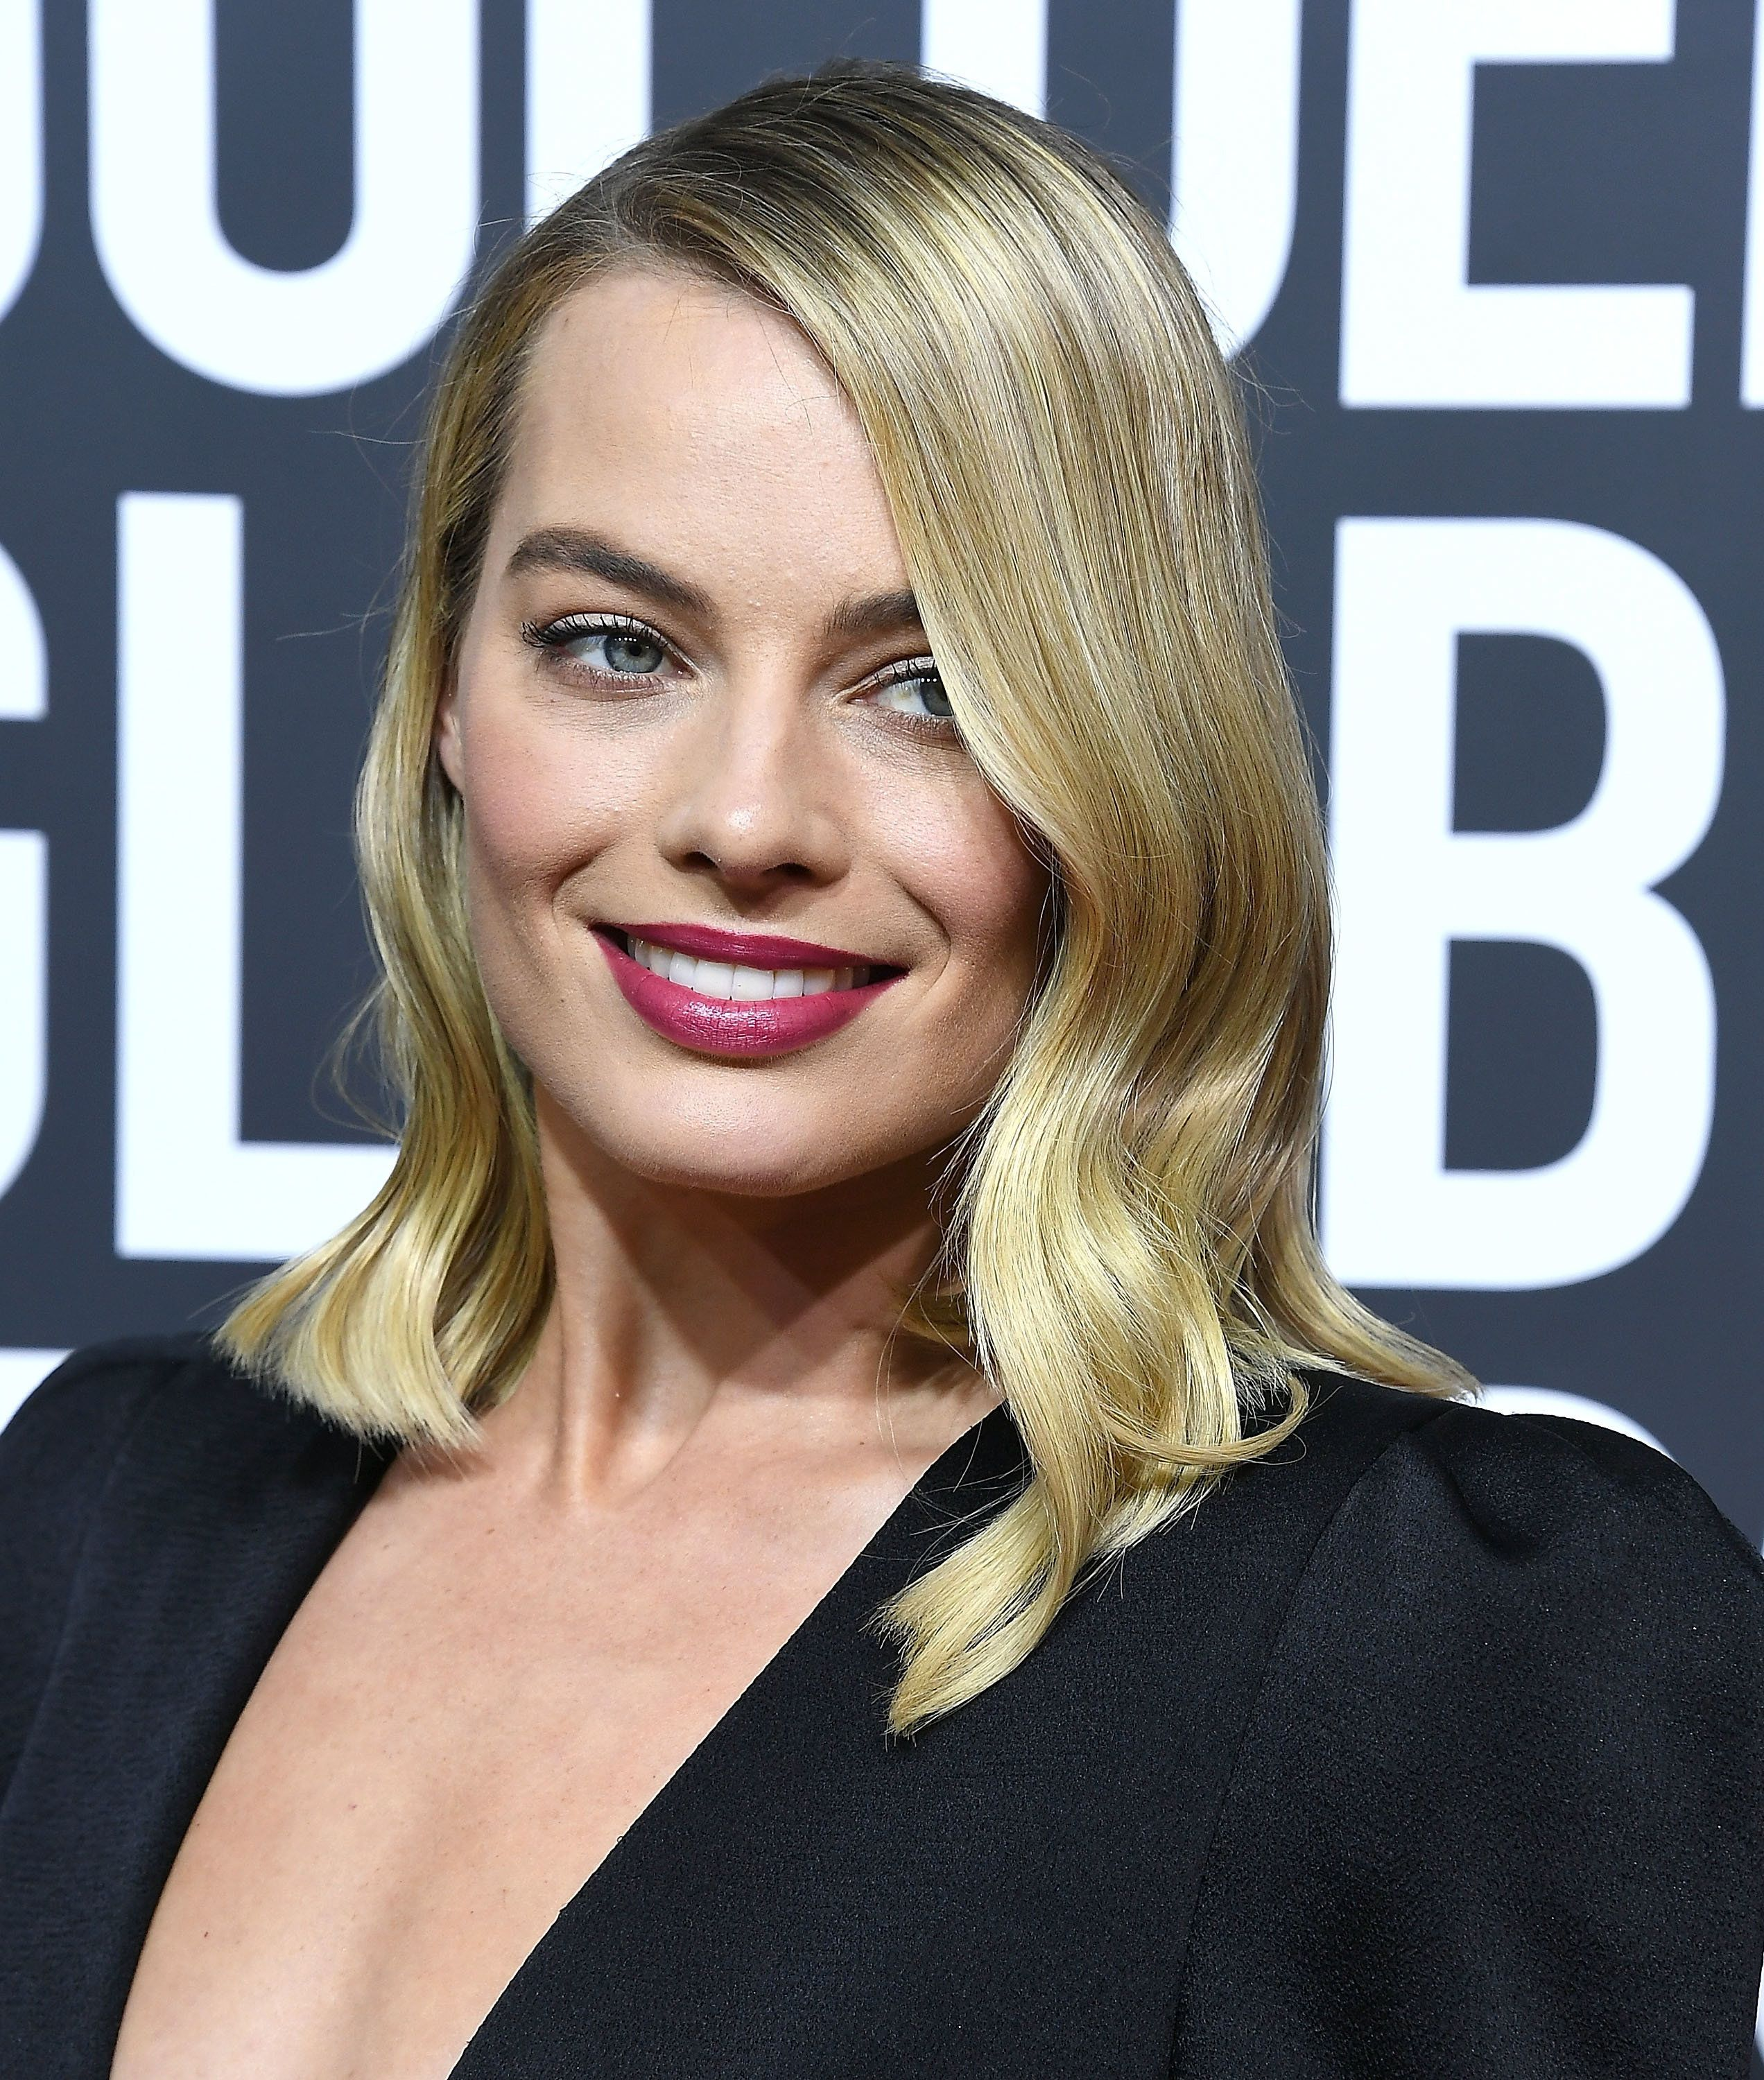 Margot Robbie on the red carpet of the 2018 Golden Globes.